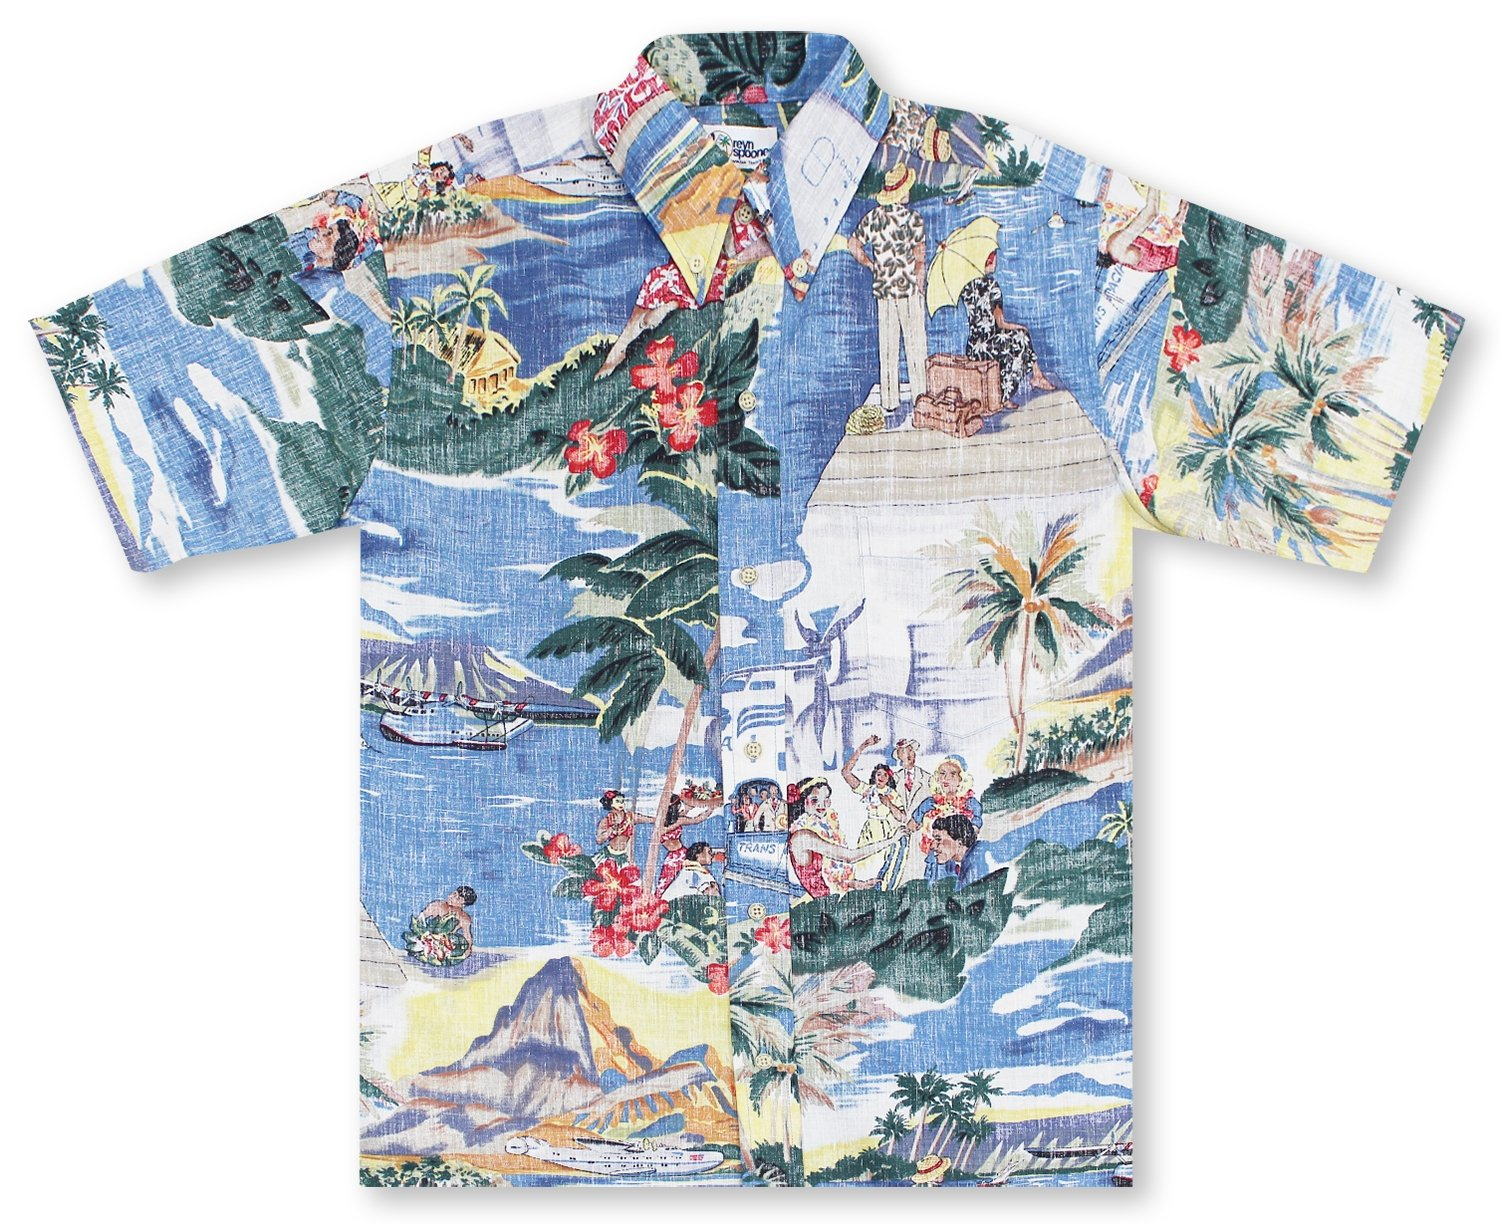 Reyn Spooner Men's Spooner Kloth Classic Fit Button Front Hawaiian Shirt Transpac, Scenic Transpac 40's, 3XL